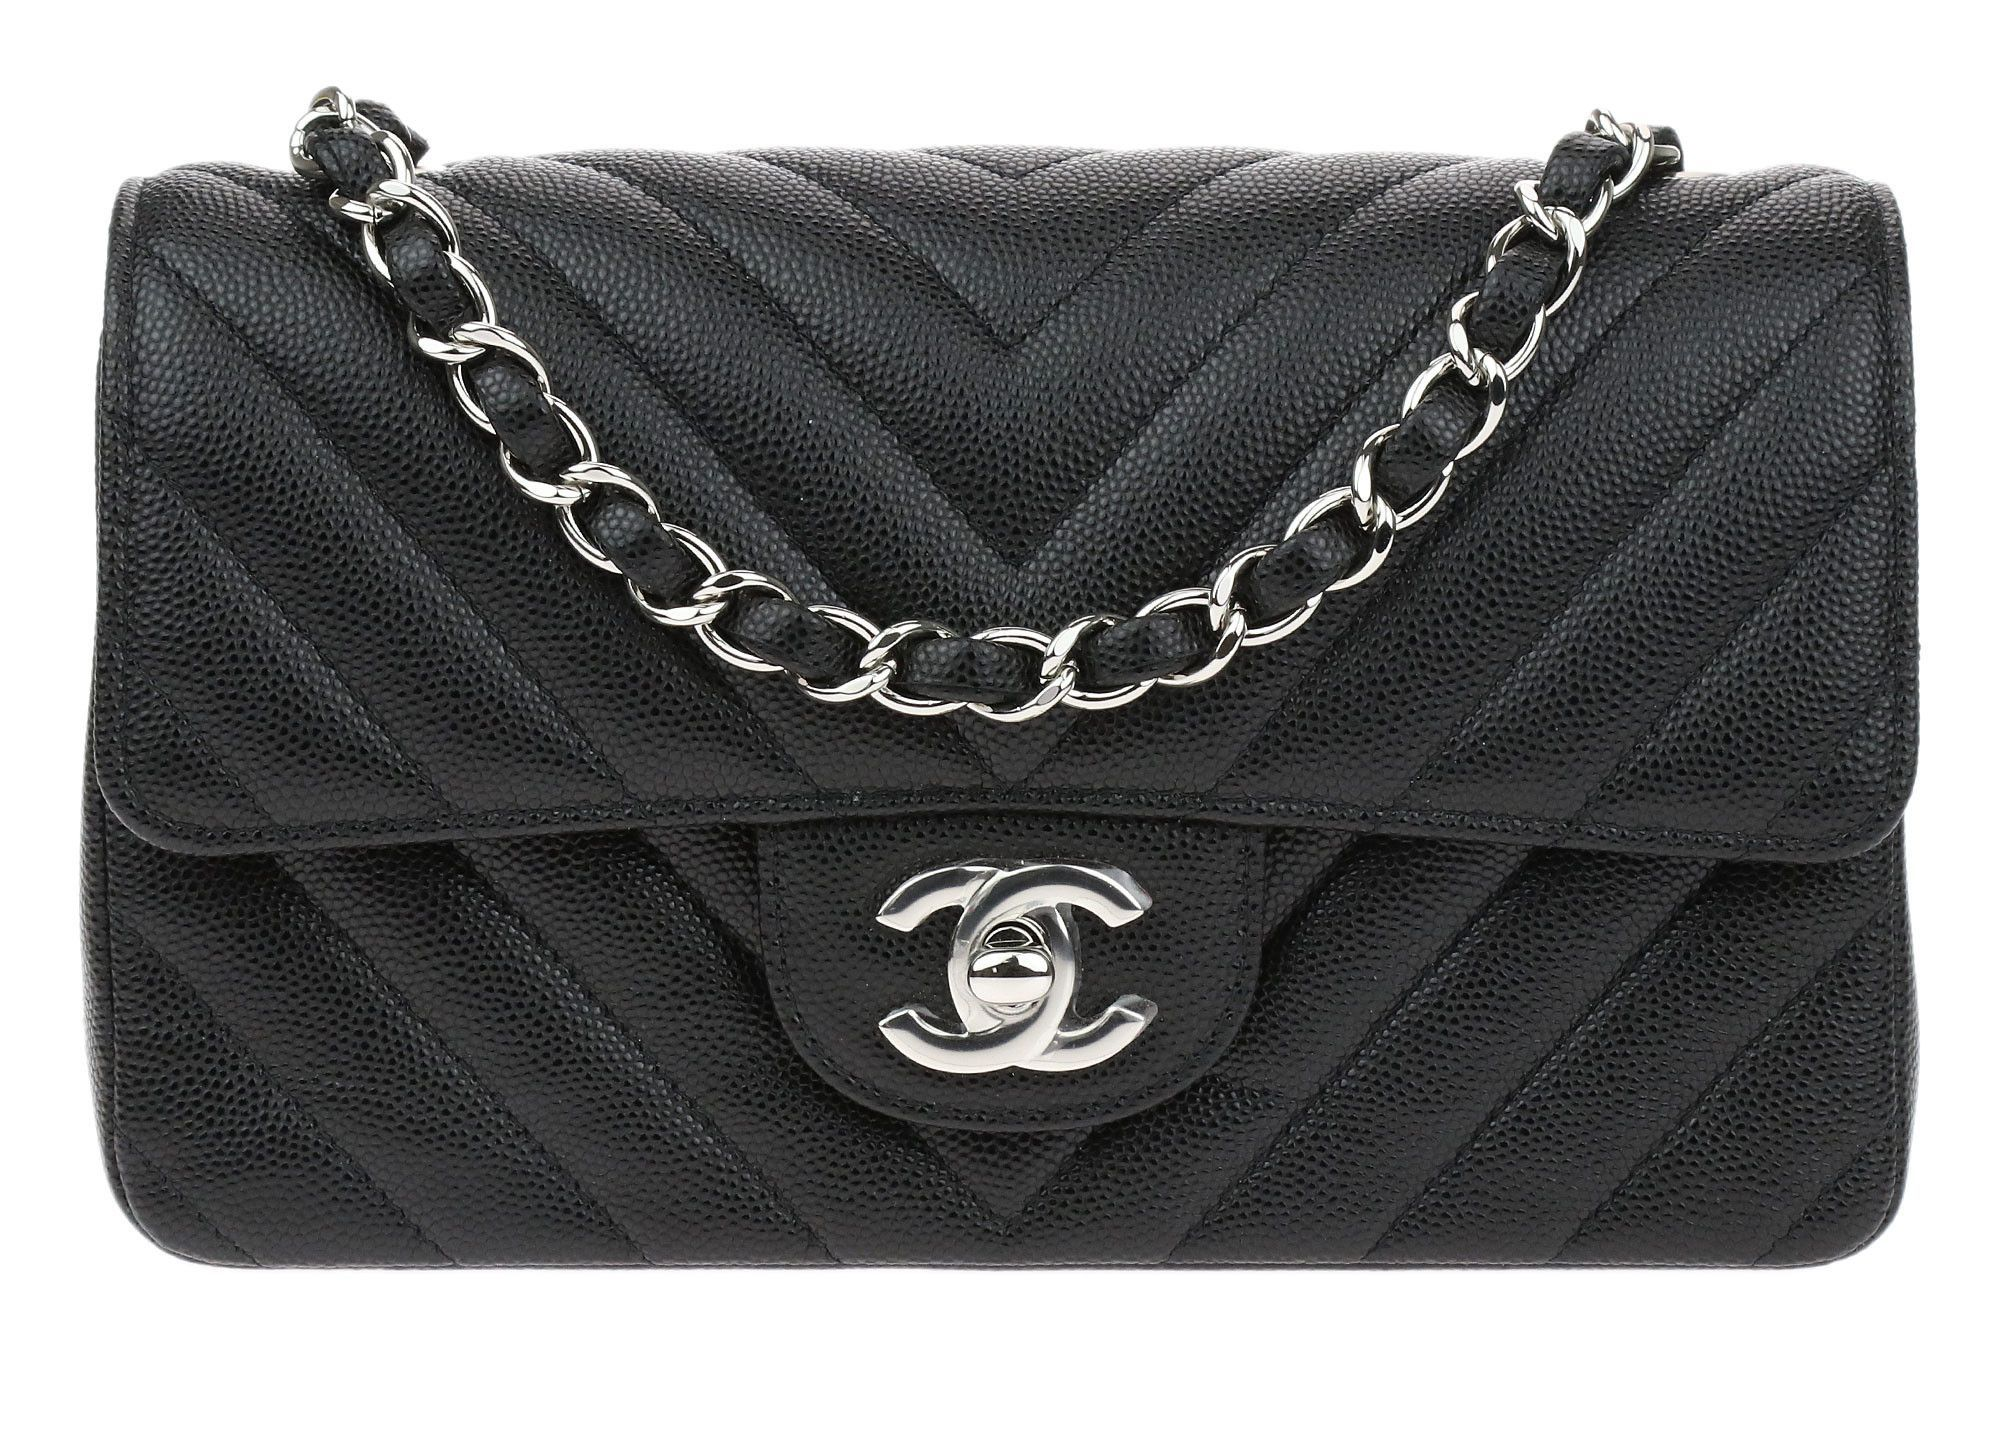 3bc5cb6138a9a7 Chanel 17S Black Caviar Leather Chevron Quilted Rectangular Mini Flap Bag